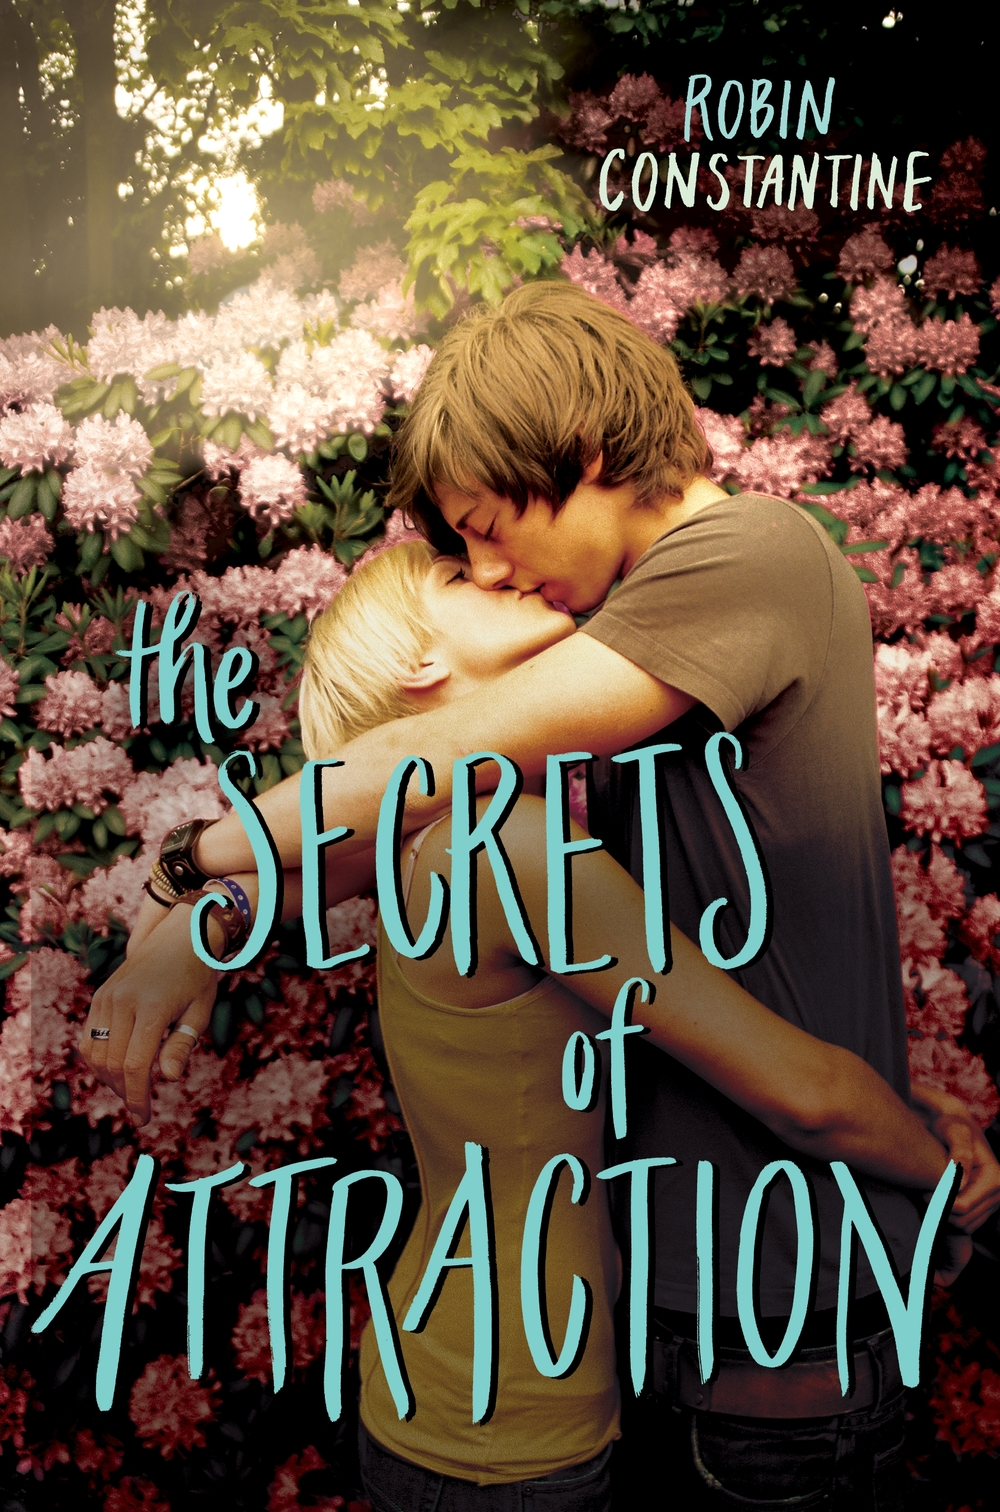 SecretsofAttraction HC C.JPG